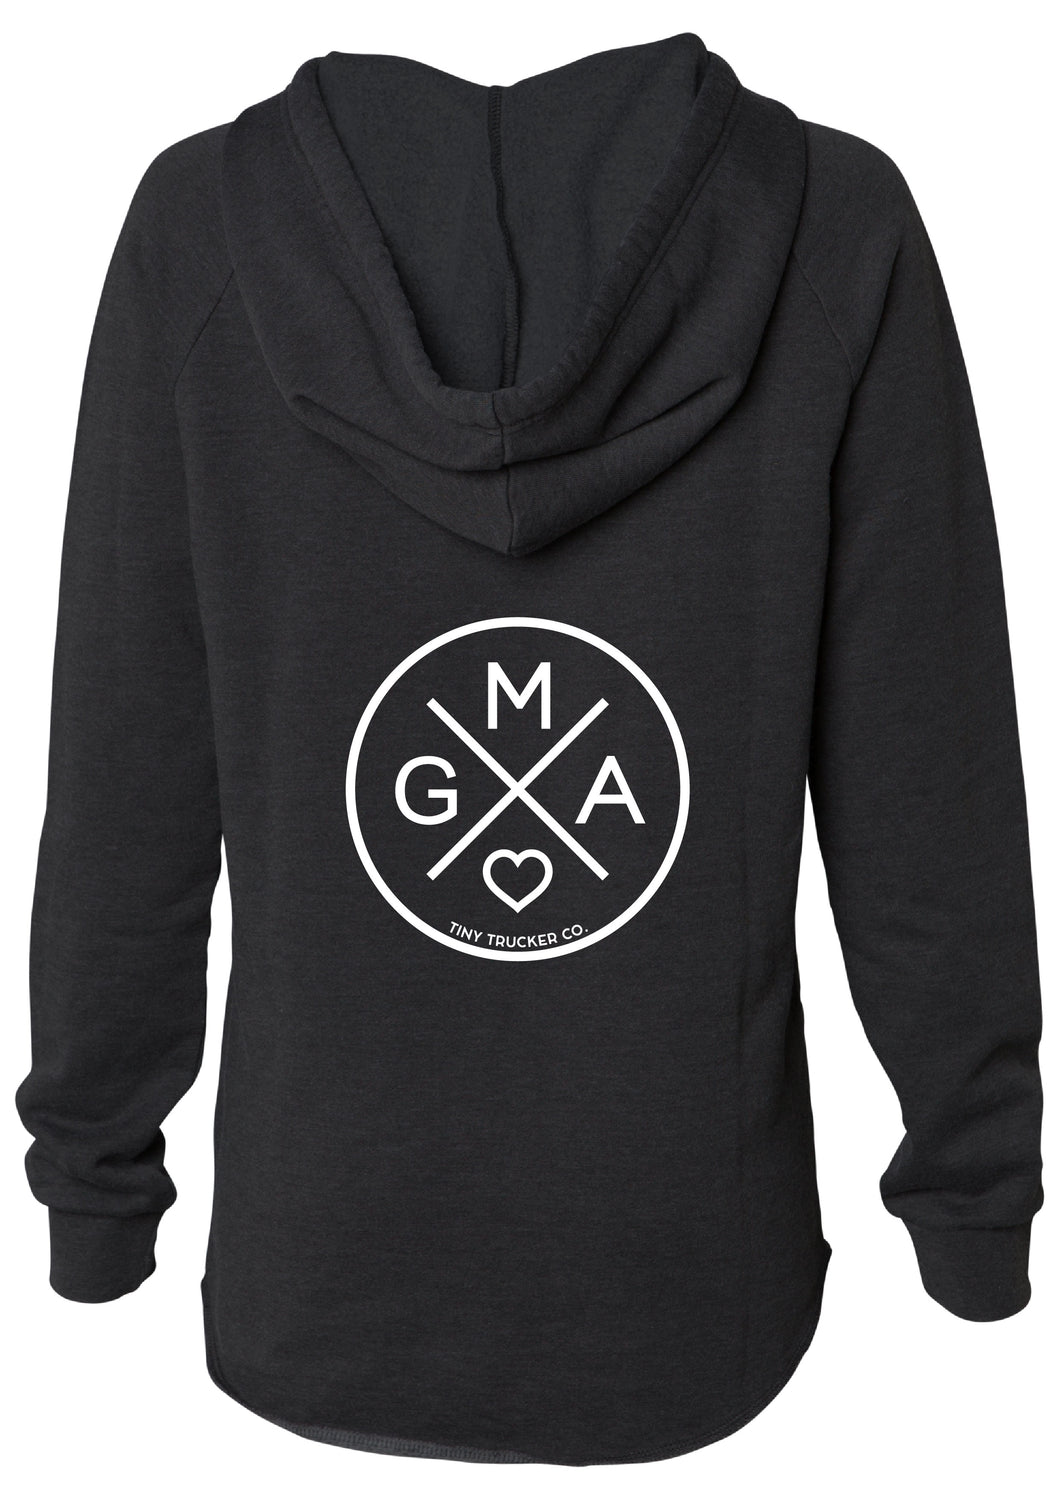 GMA X V-NECK SWEATSHIRT - BLACK